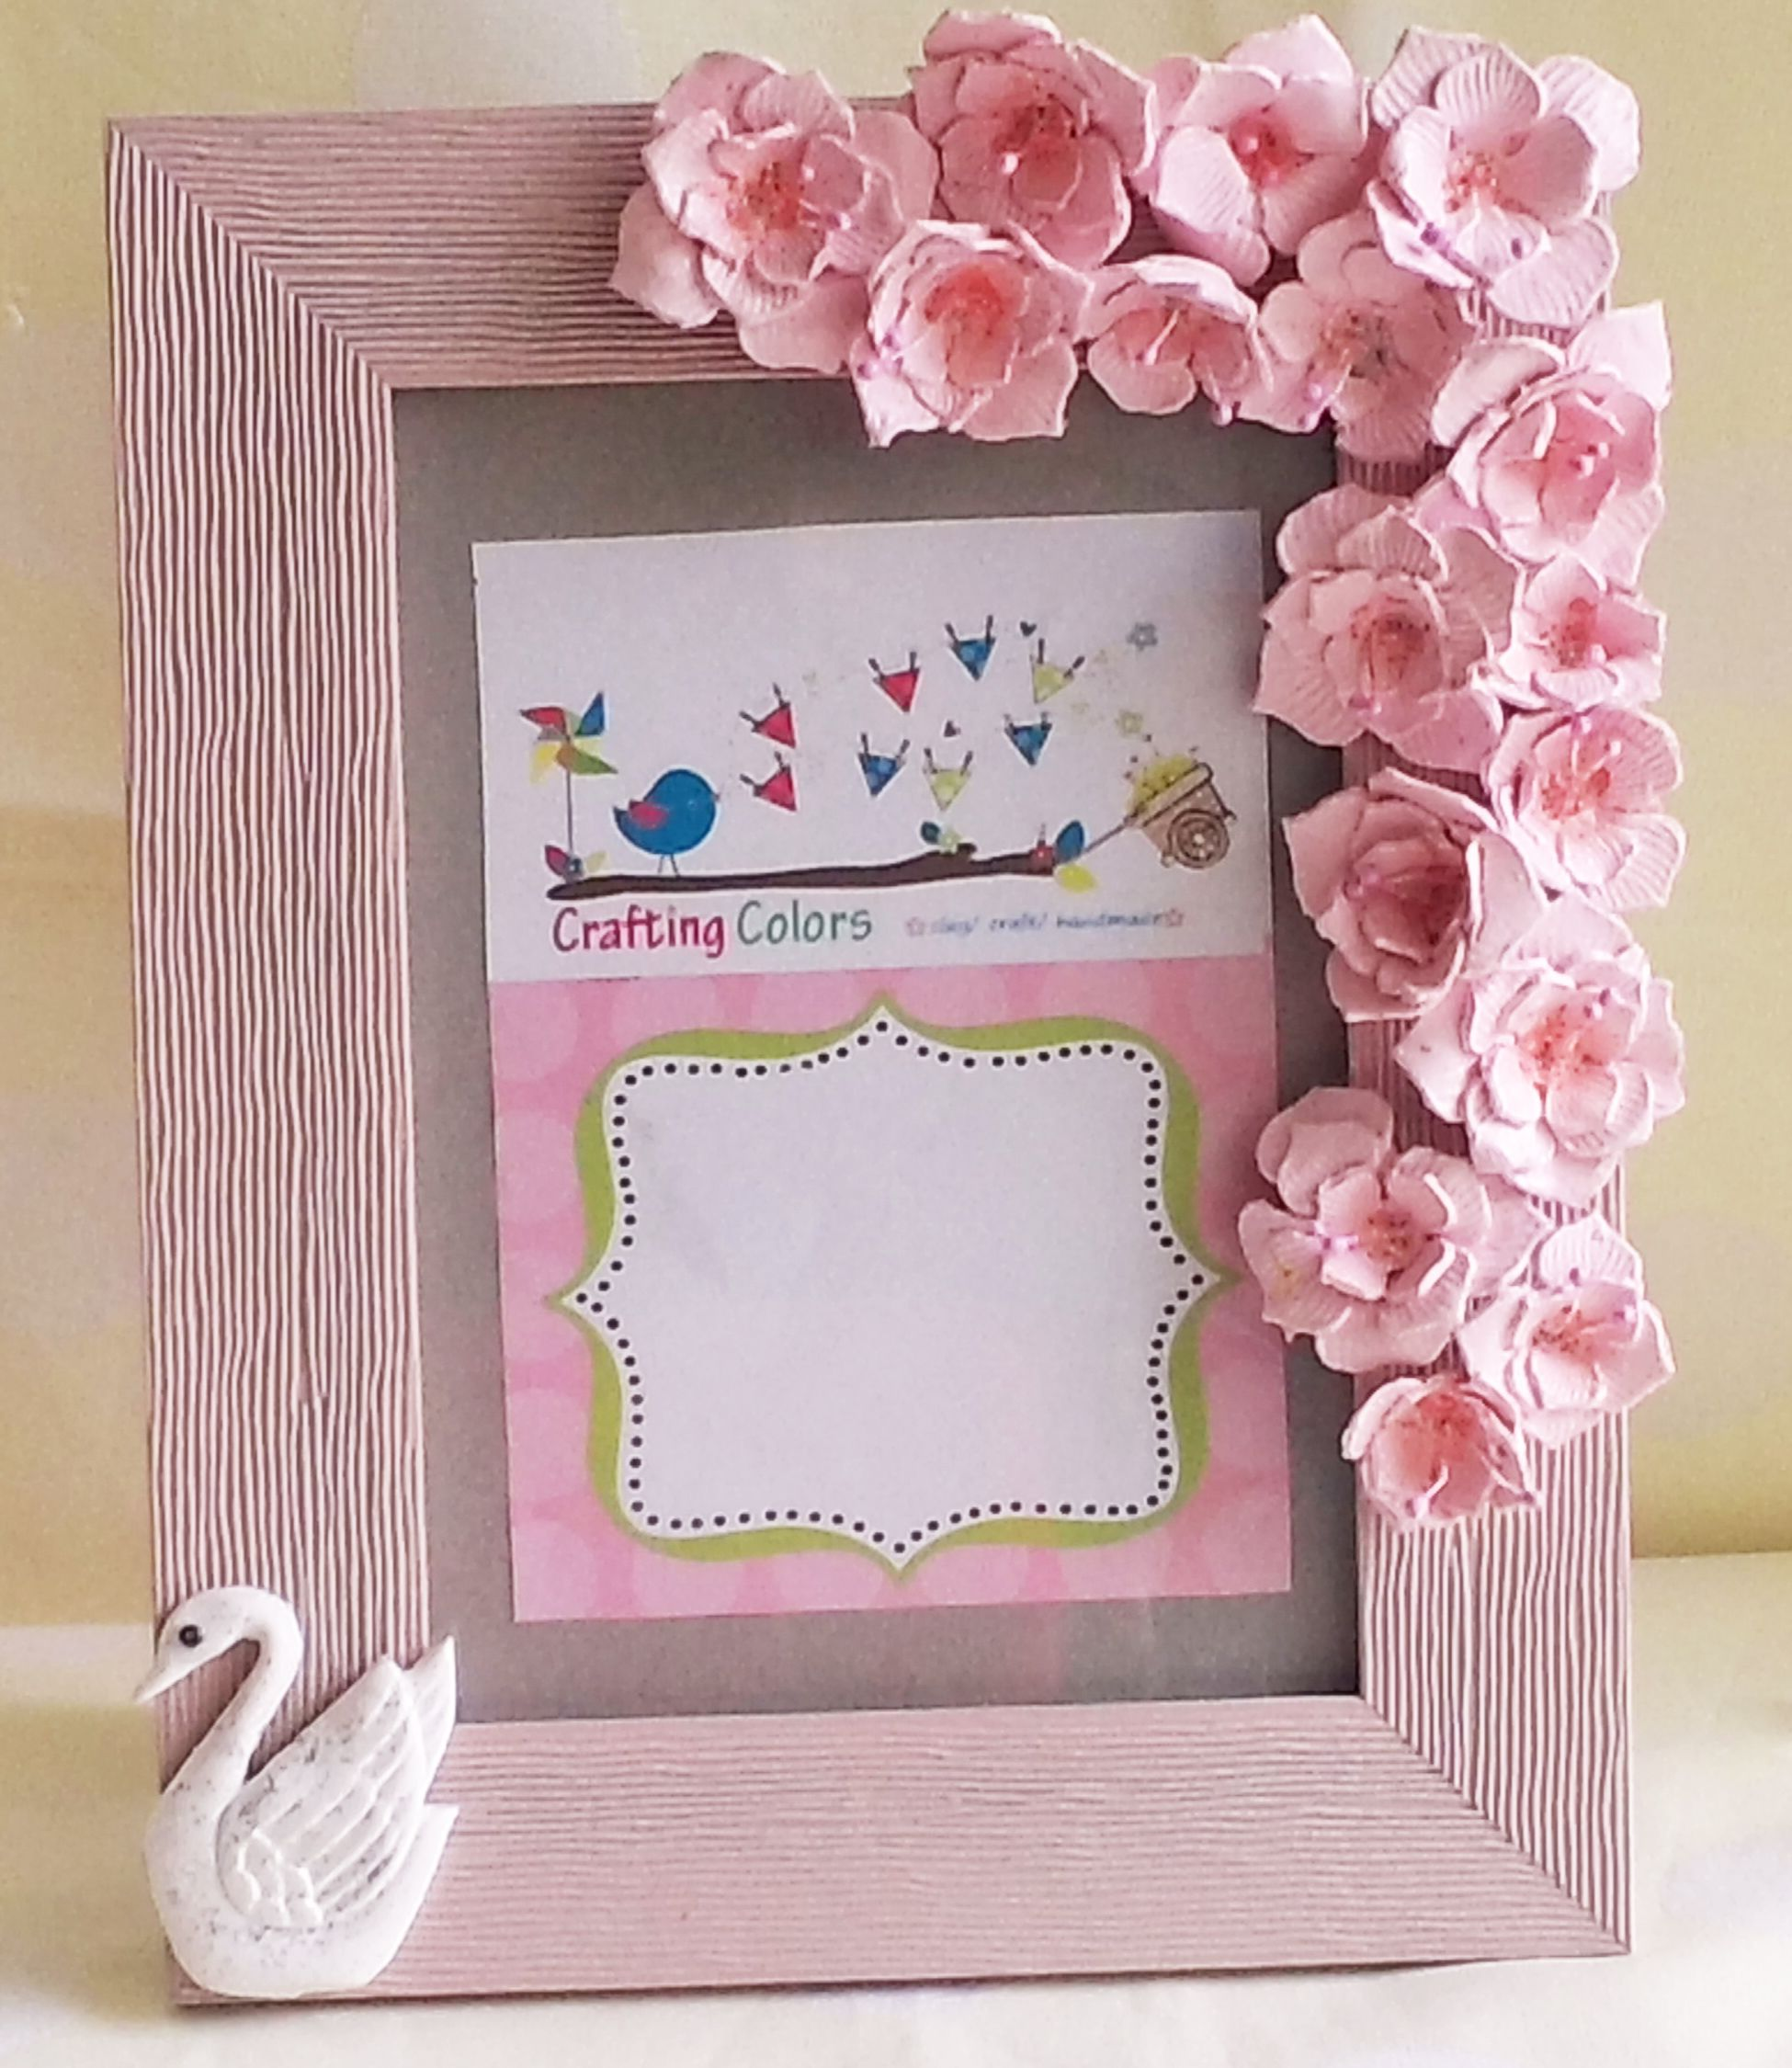 Handmade photo frame handmade frames and cards pinterest handmade photo frame sciox Image collections